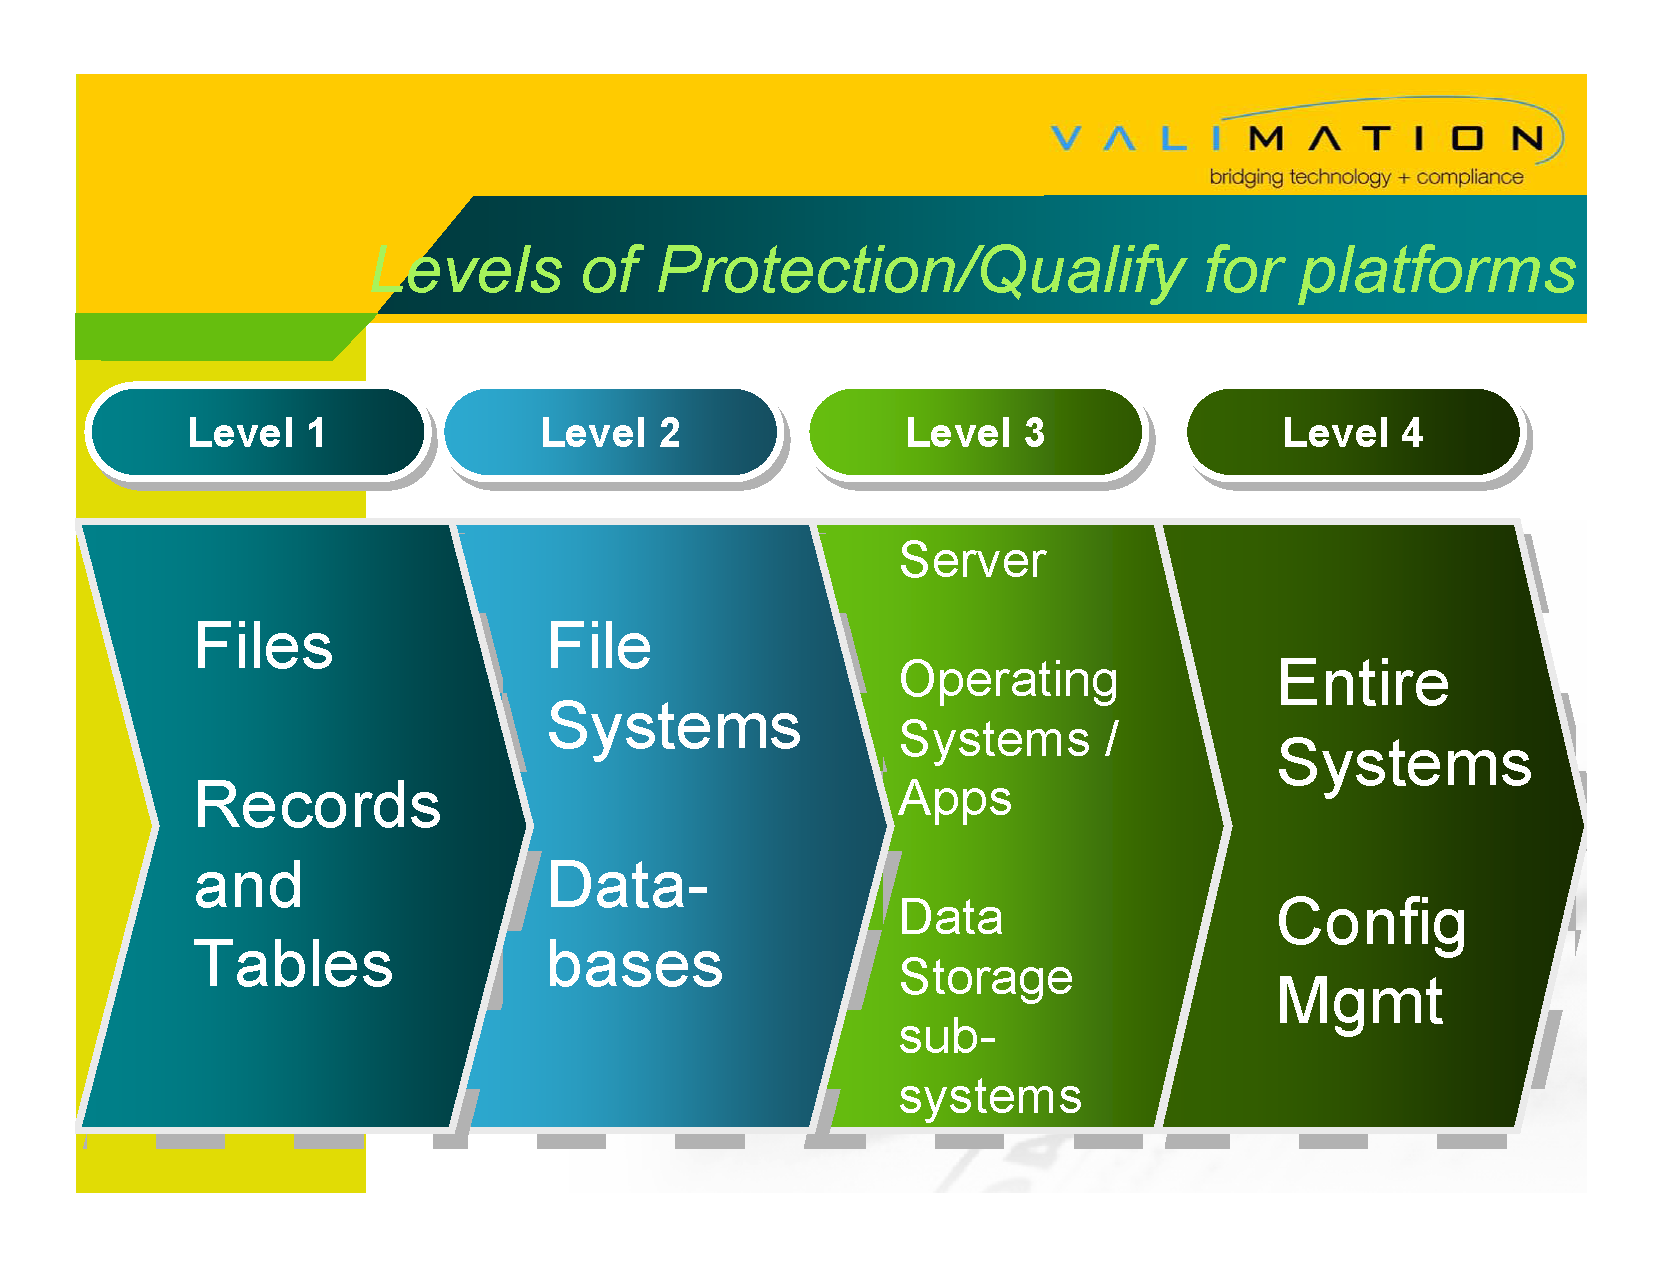 Validating an Enterprise Backup System by ValiMation_Page_06.png